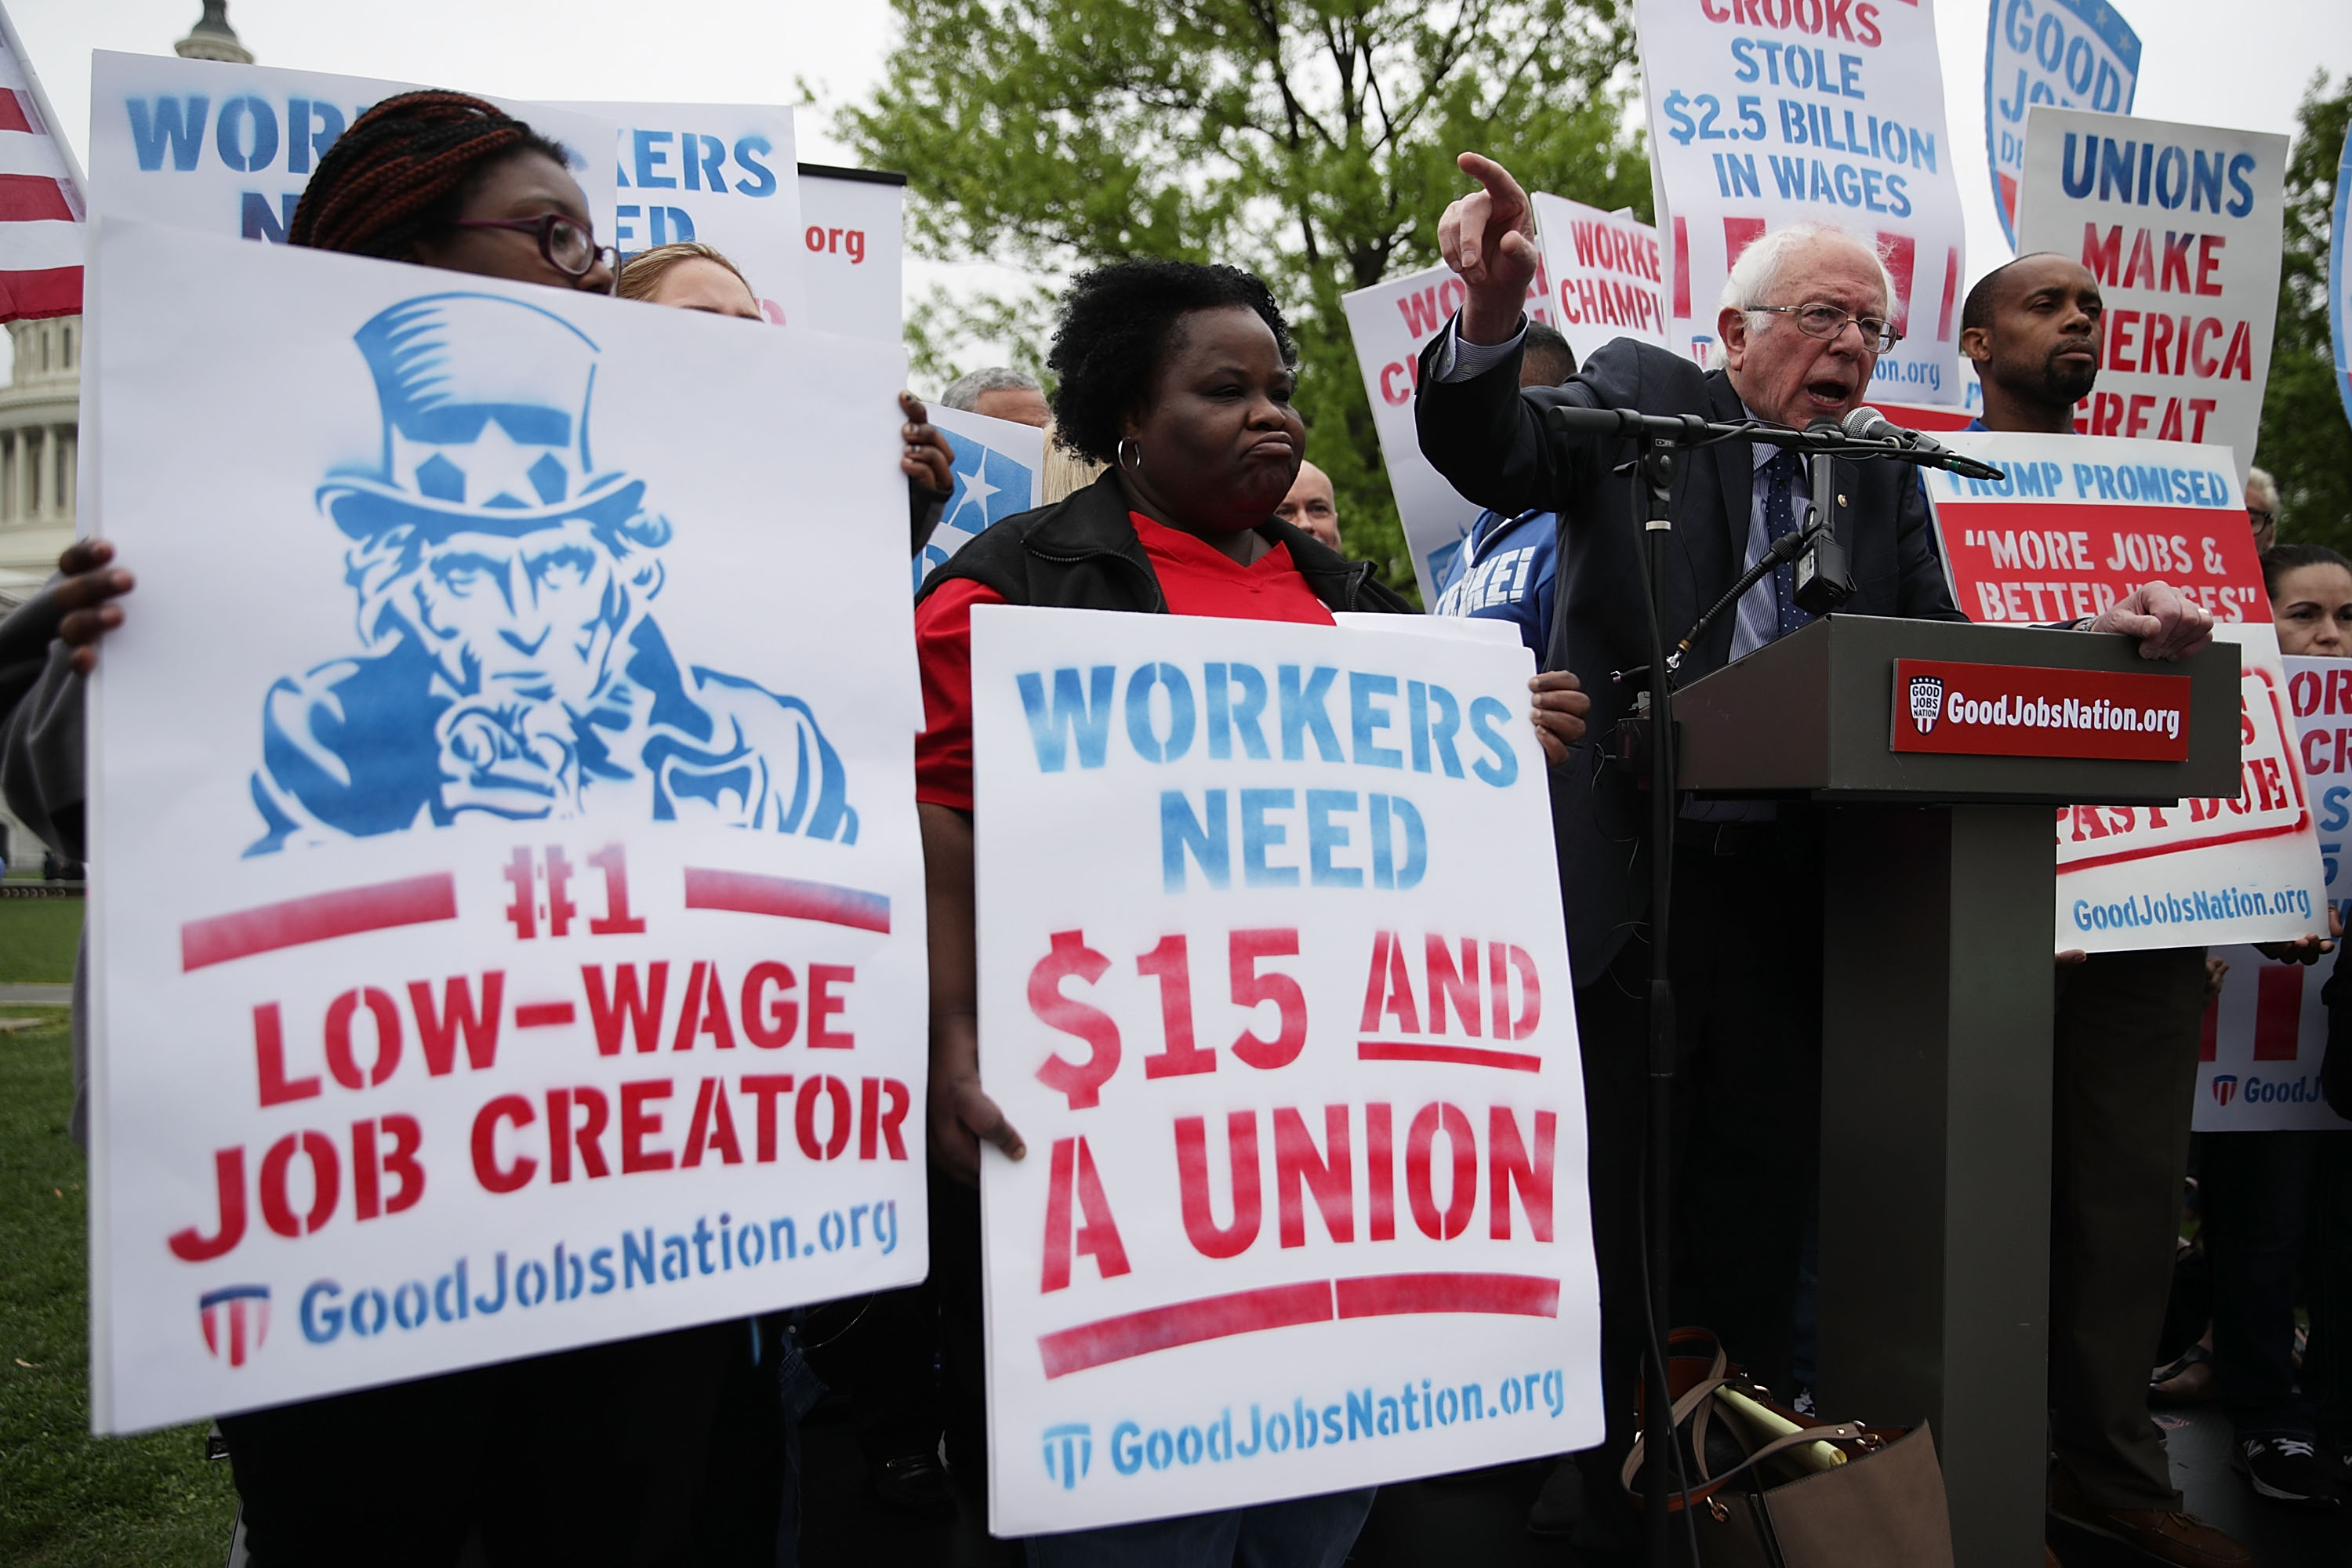 Senators Sanders, Schumer, And Murray Rally With Fair Living Wage Activists On Raising Minimum Wage